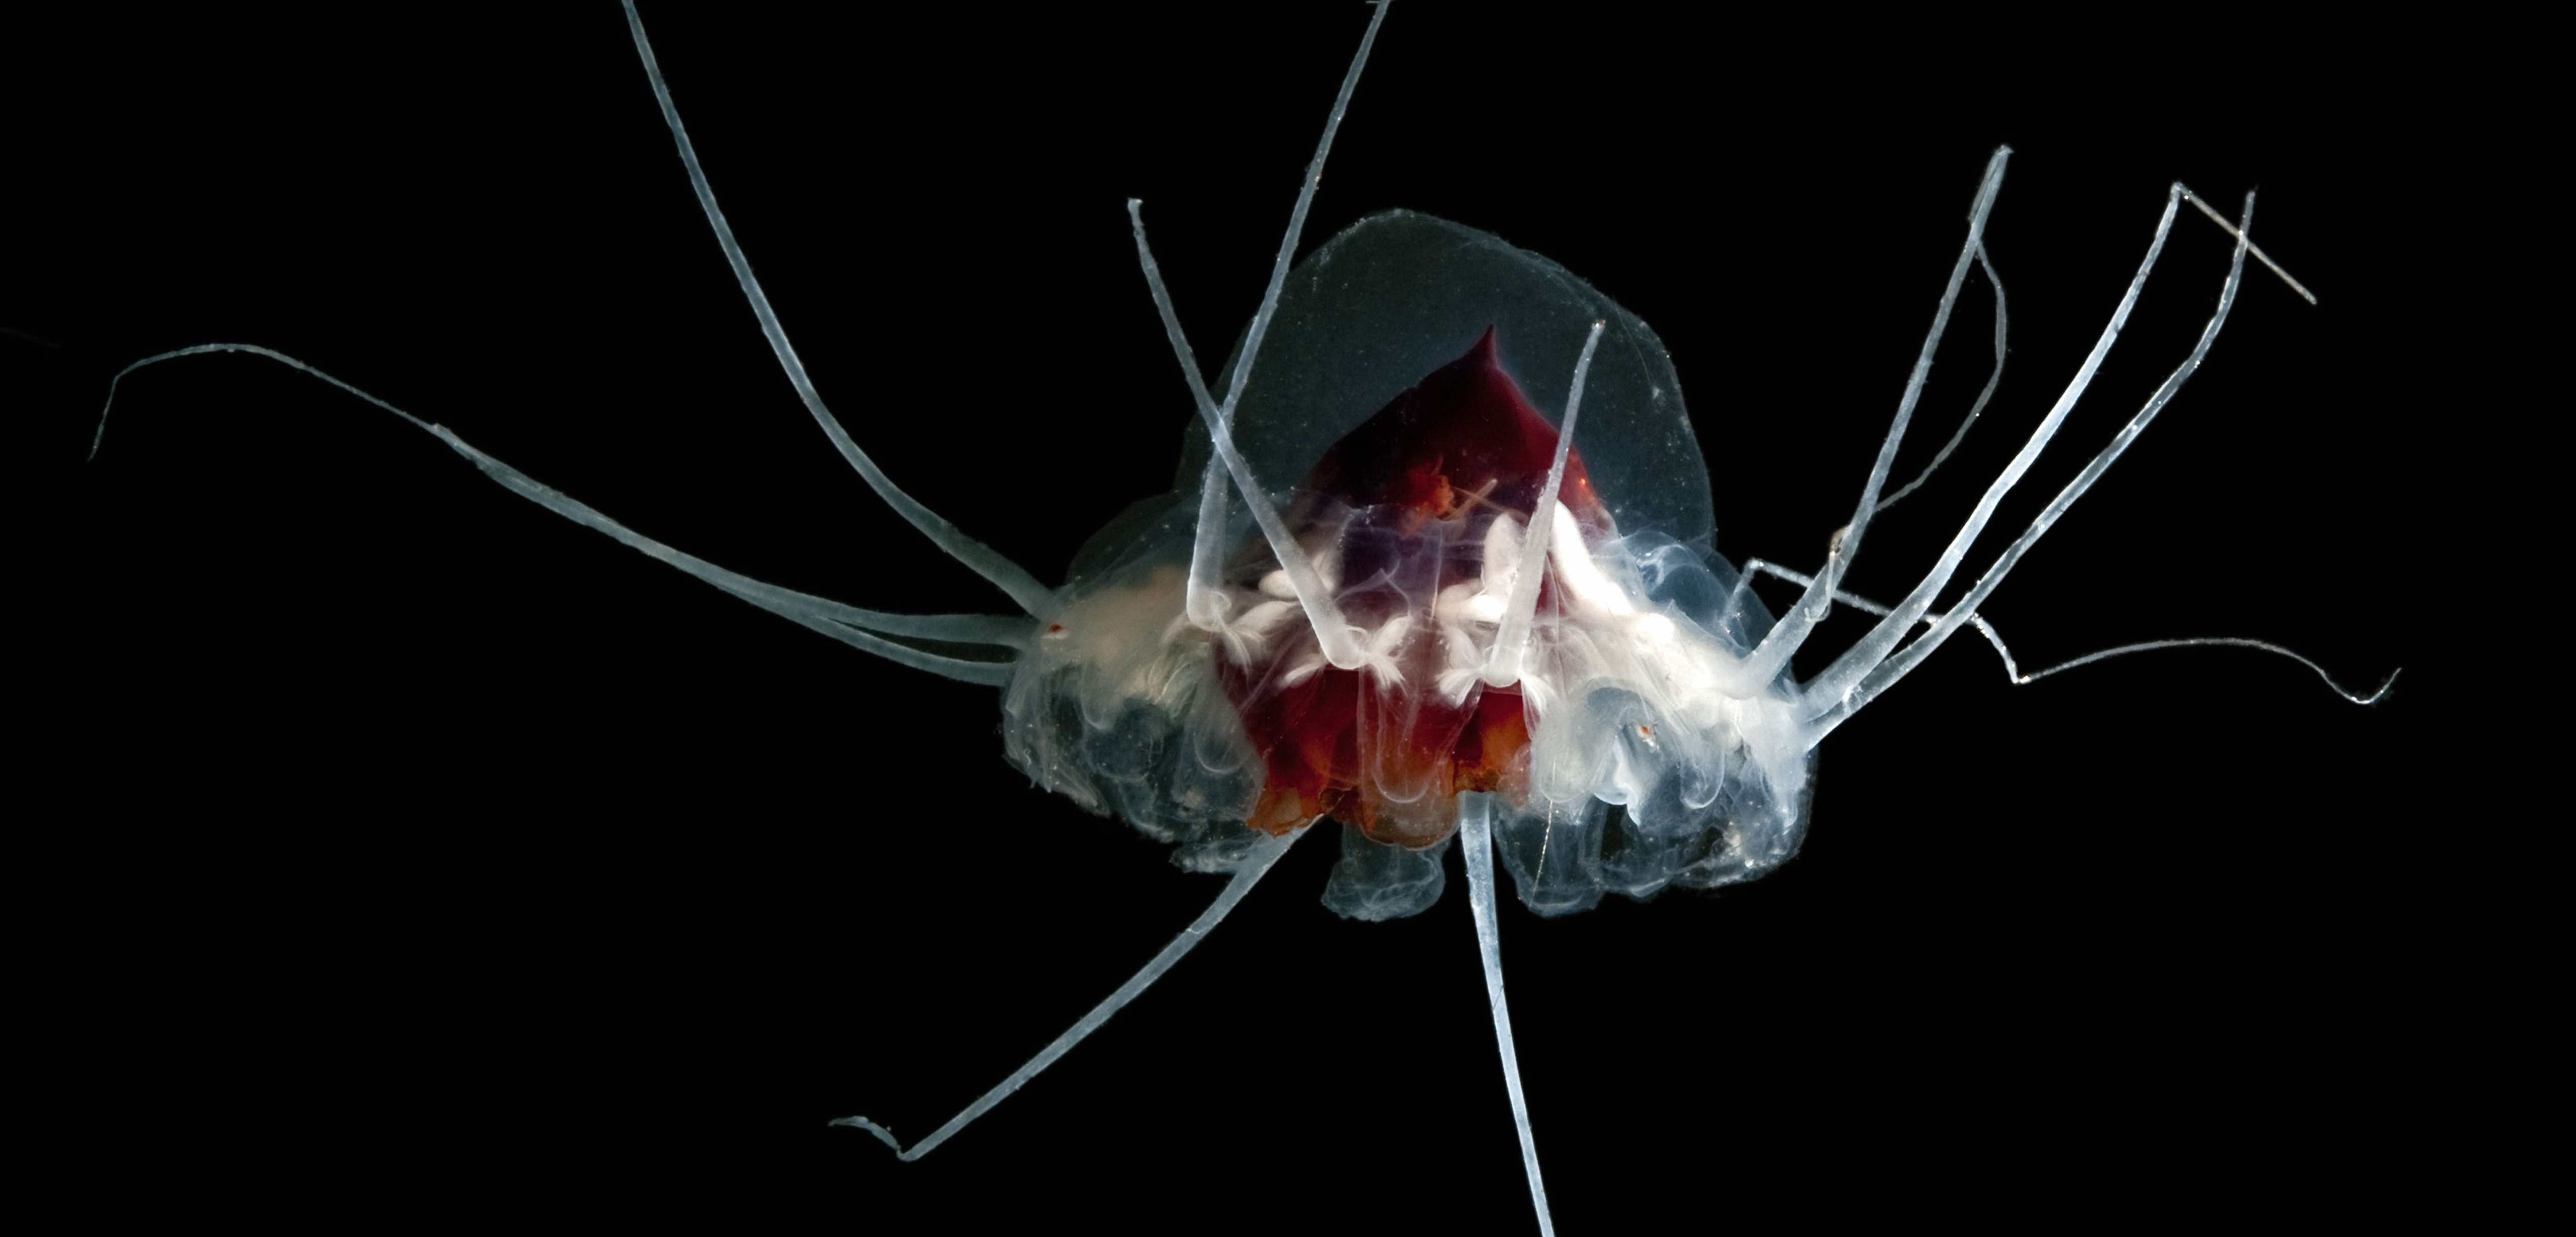 The helmet jellyfish is a deep sea species, and spends most of its time hundreds or even thousands of meters below the surface. Photo by Sonke Johnsen/Visuals Unlimited/Corbis